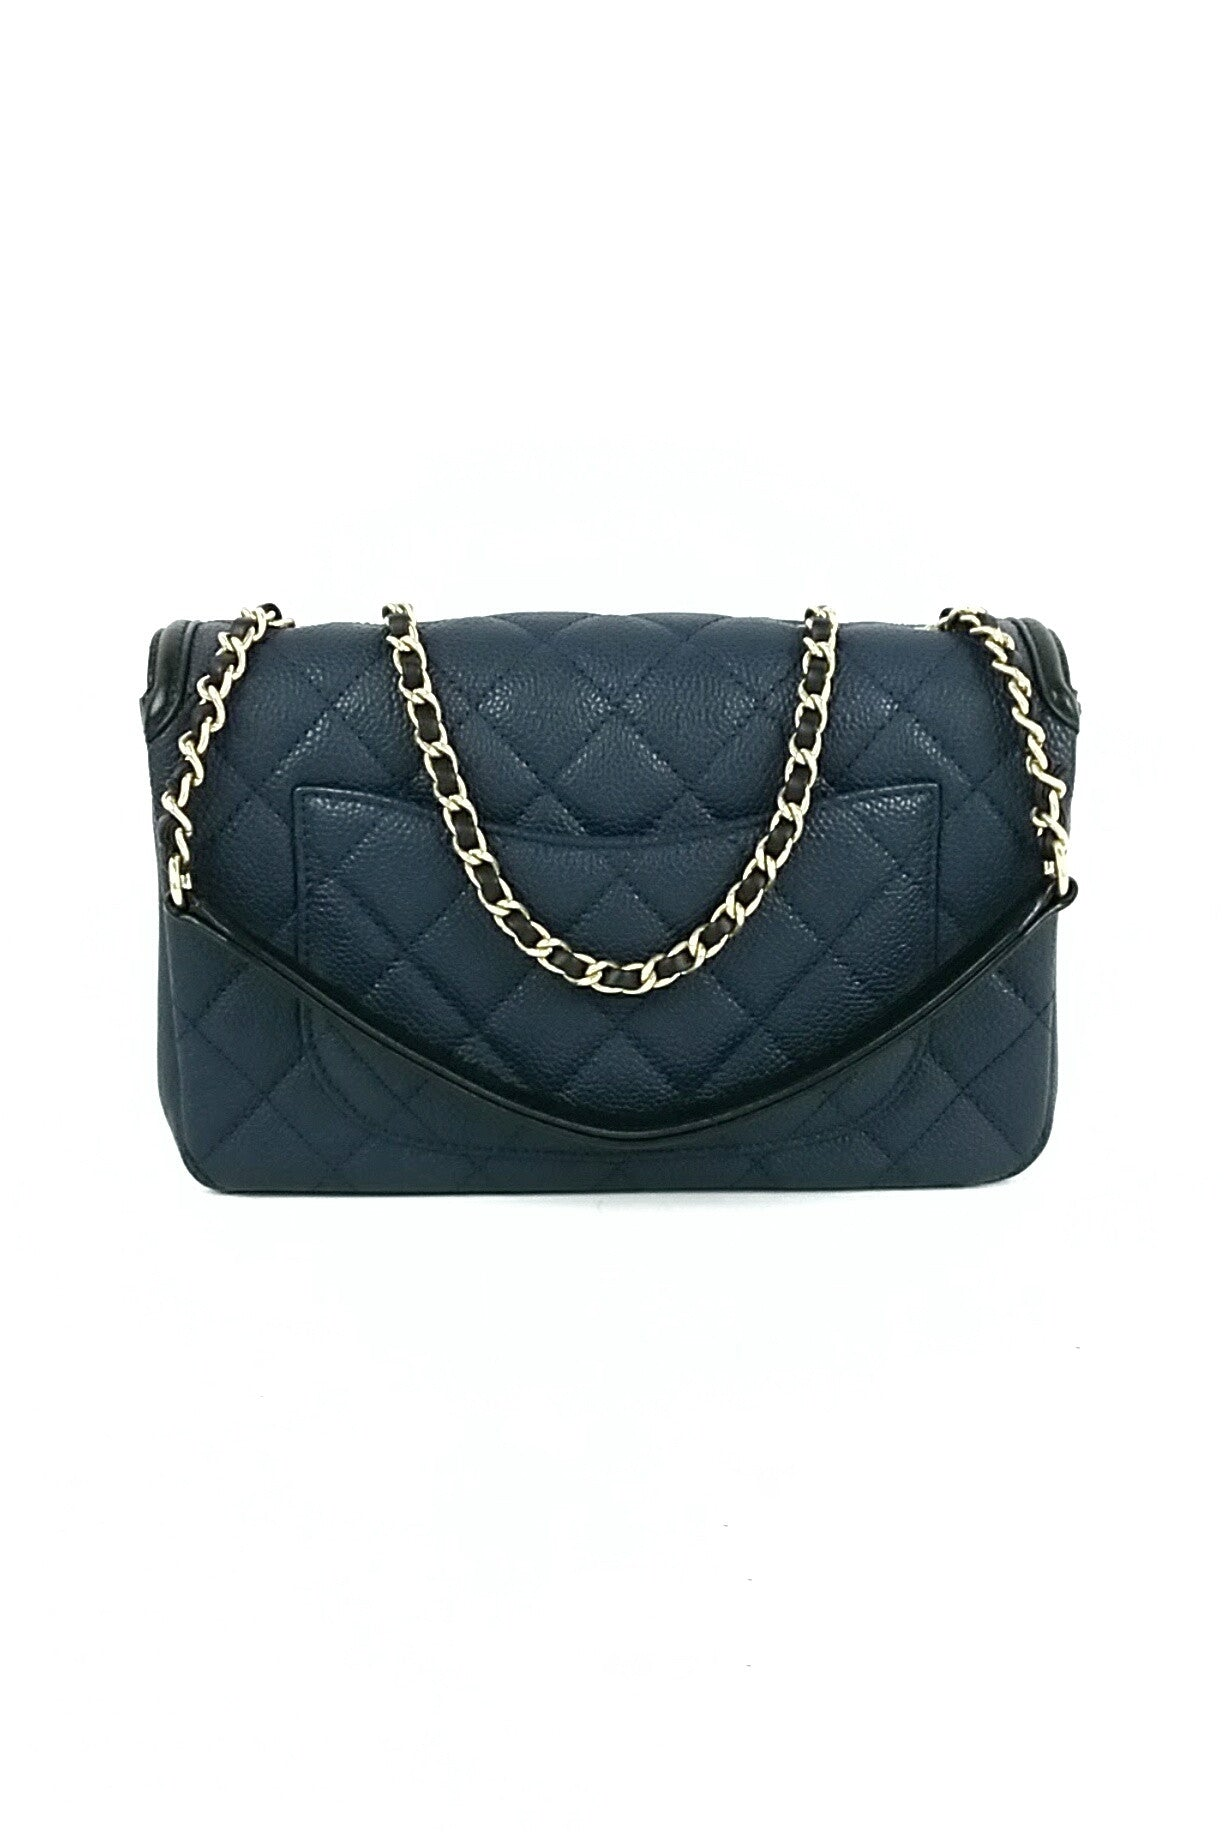 Navy Black Caviar Filigree Medium Flap Bag GHW